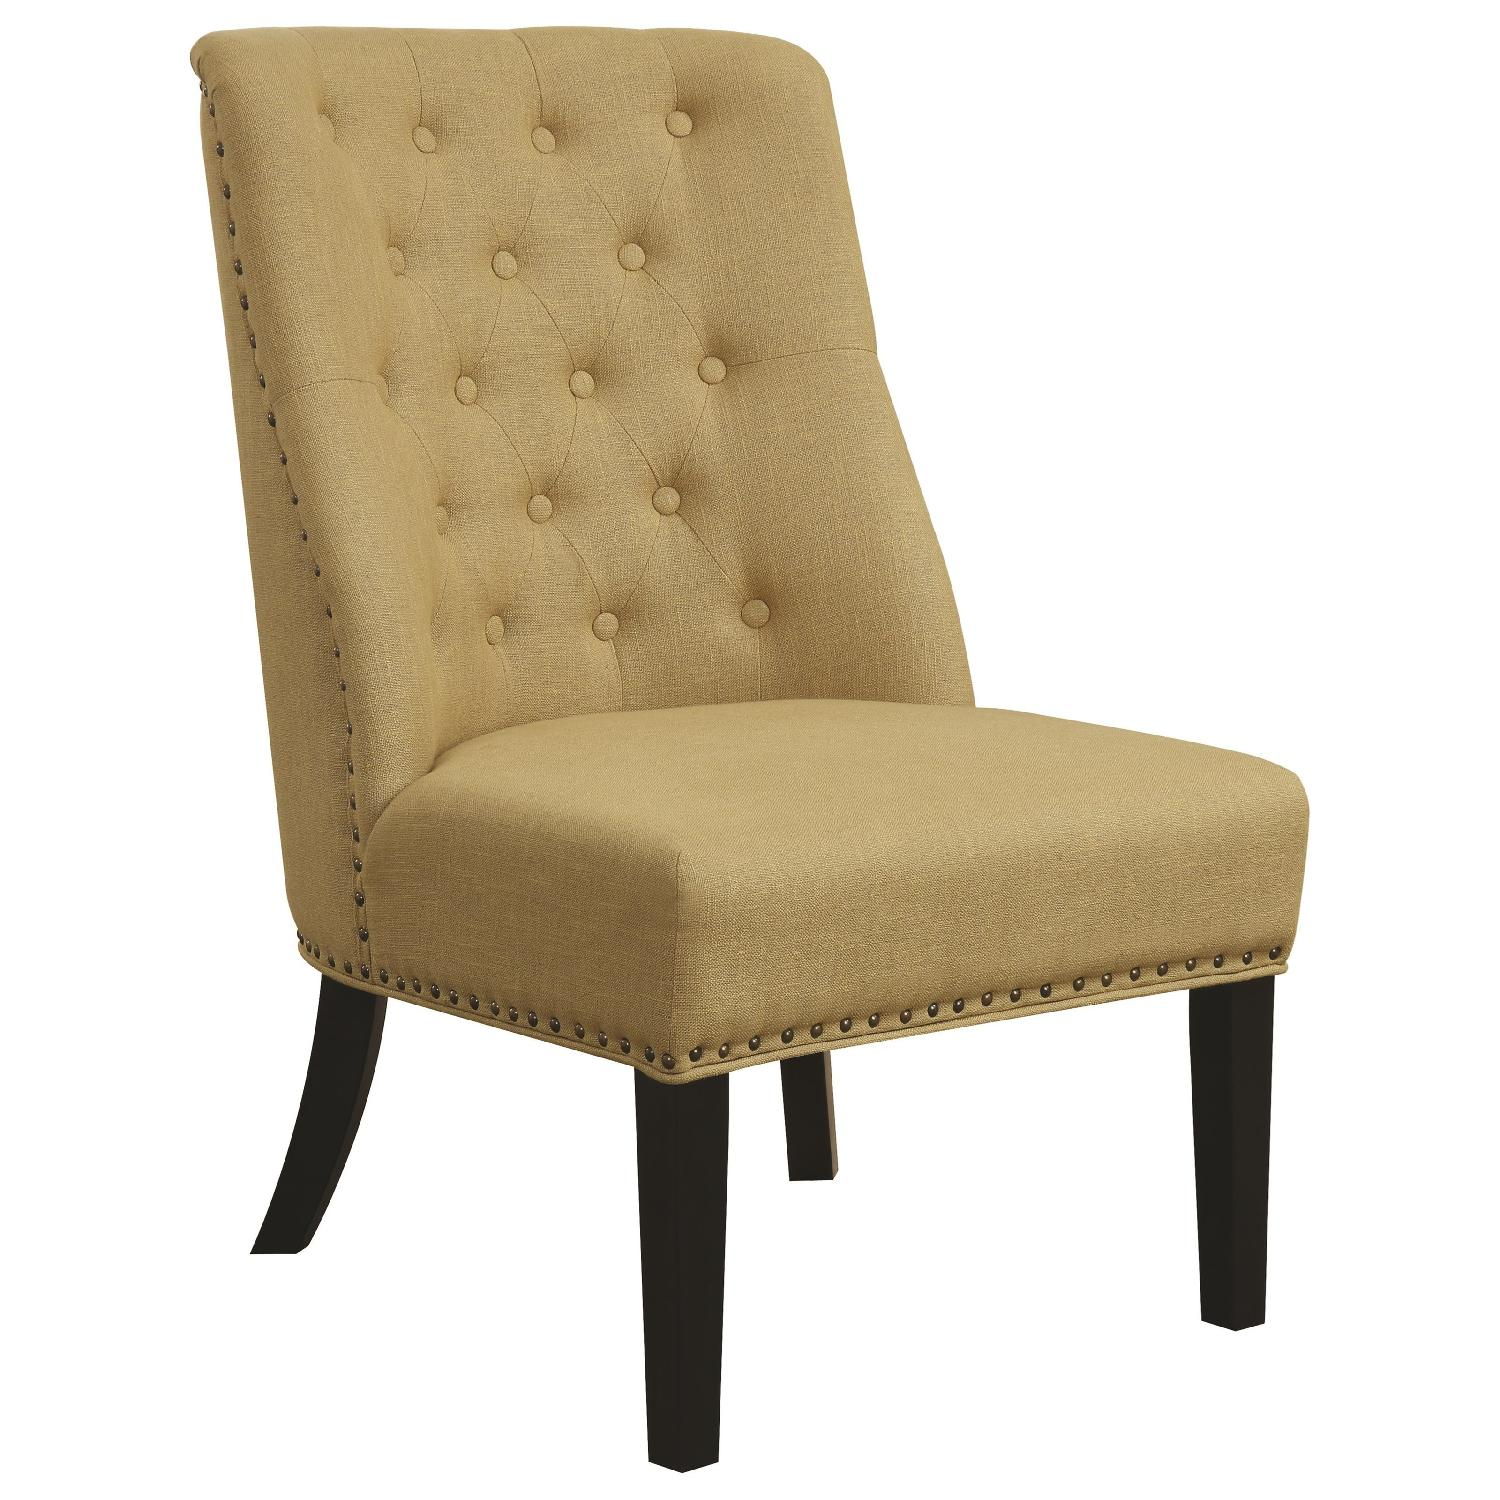 Accent Chair W/ Tufted Back U0026 Nailhead Accent In Grey Fabric ...